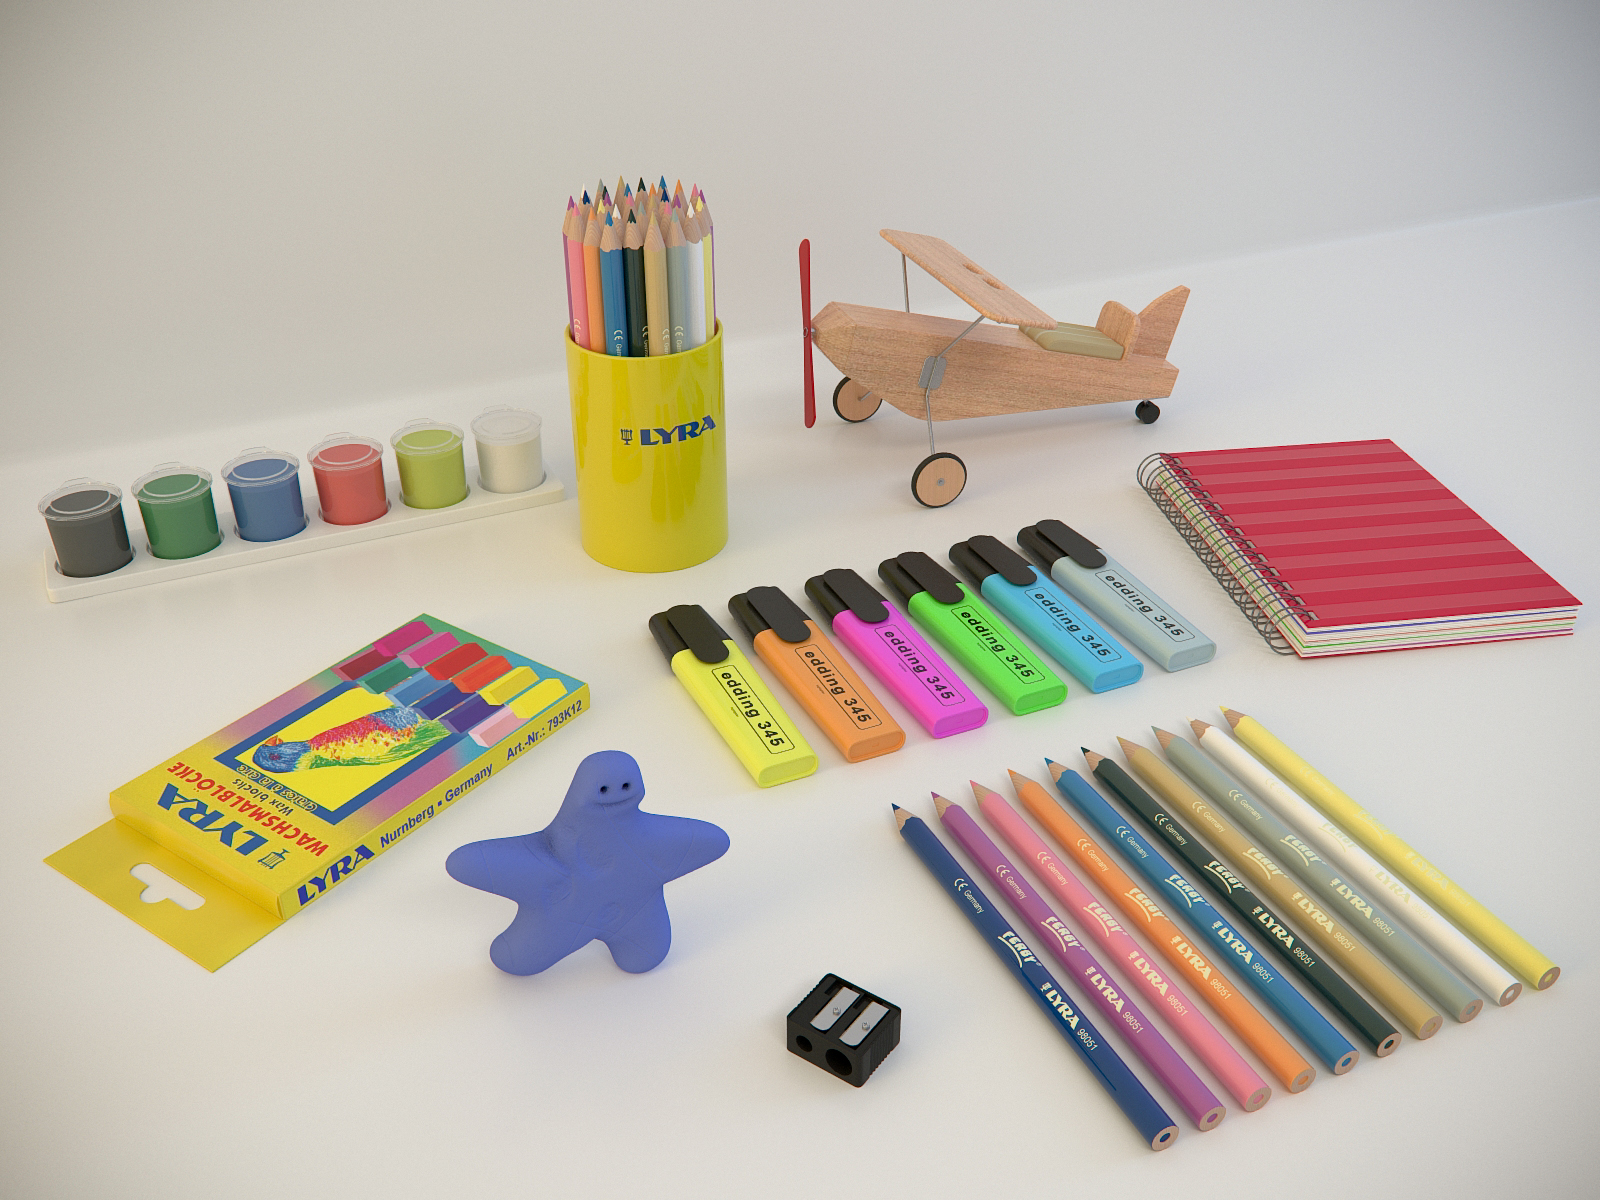 All kinds of painting supplies